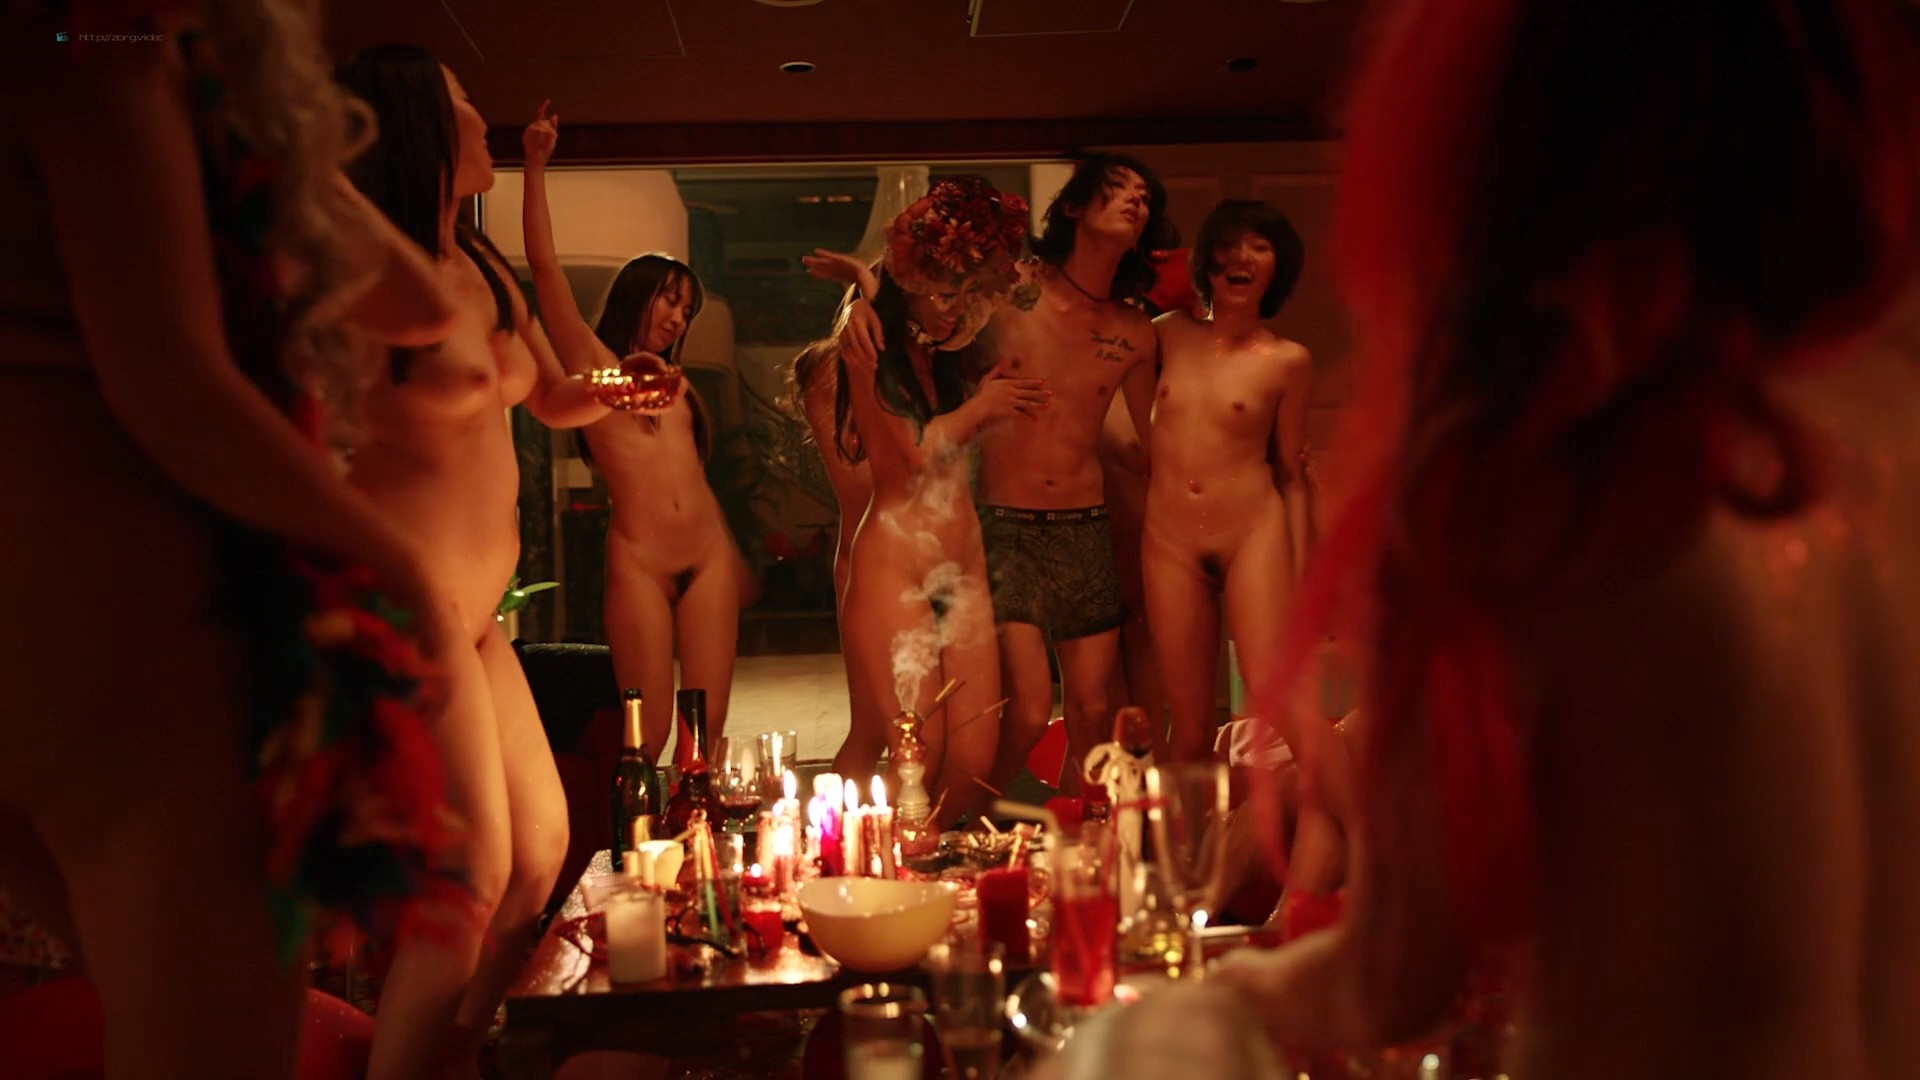 Haruka Abe nude full frontal Tao Okamoto and others nude too - Shes Just A Shadow (2019) BluRay (3)